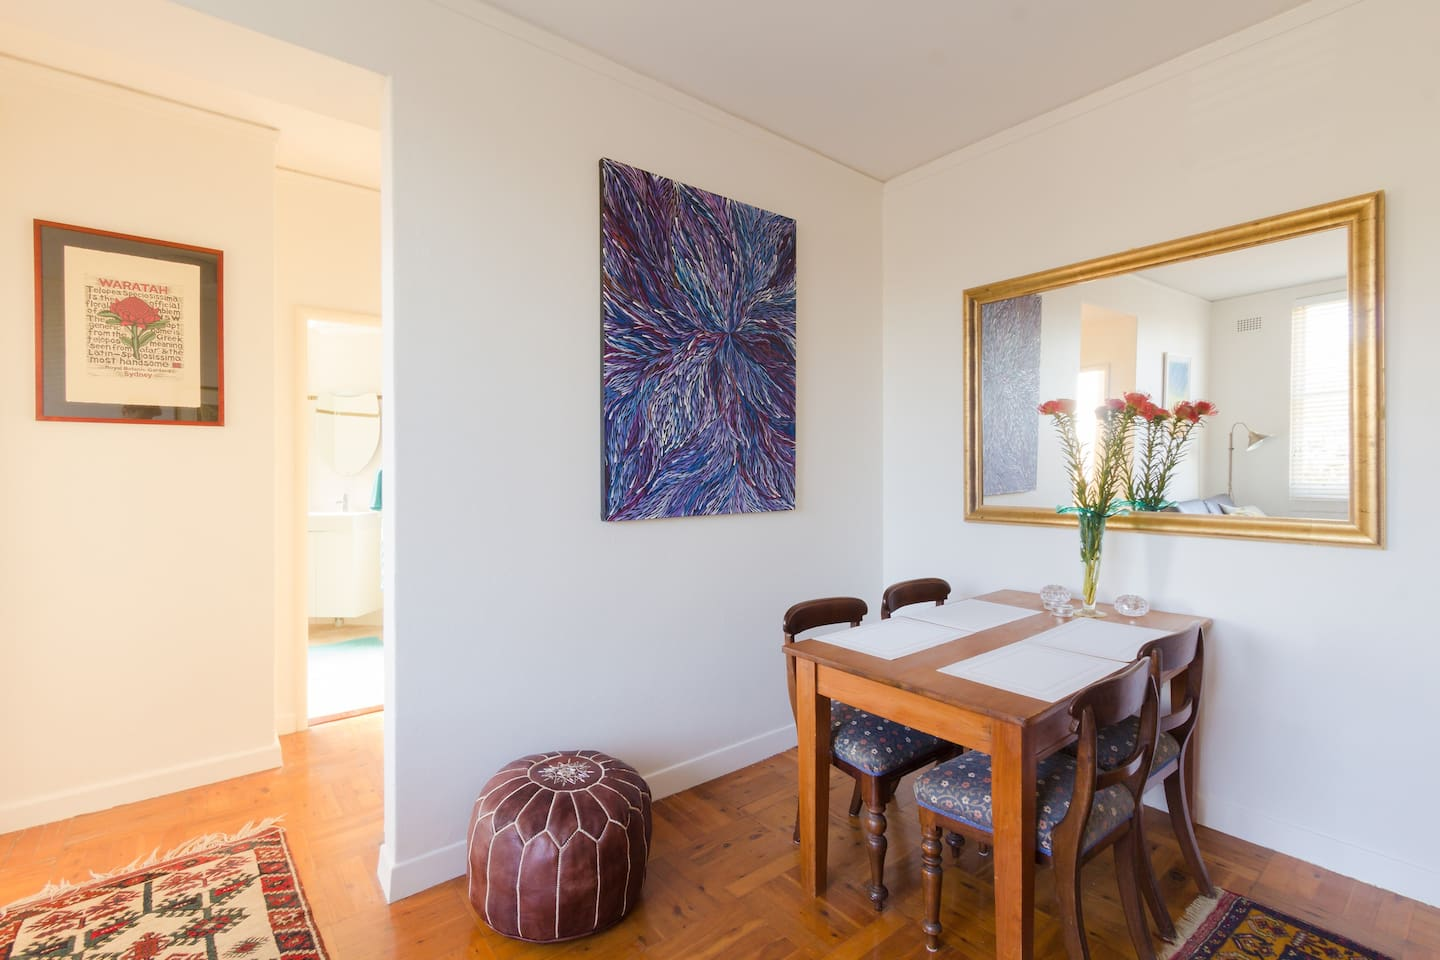 Sunny lounge and dining room with parquetry floors, rugs